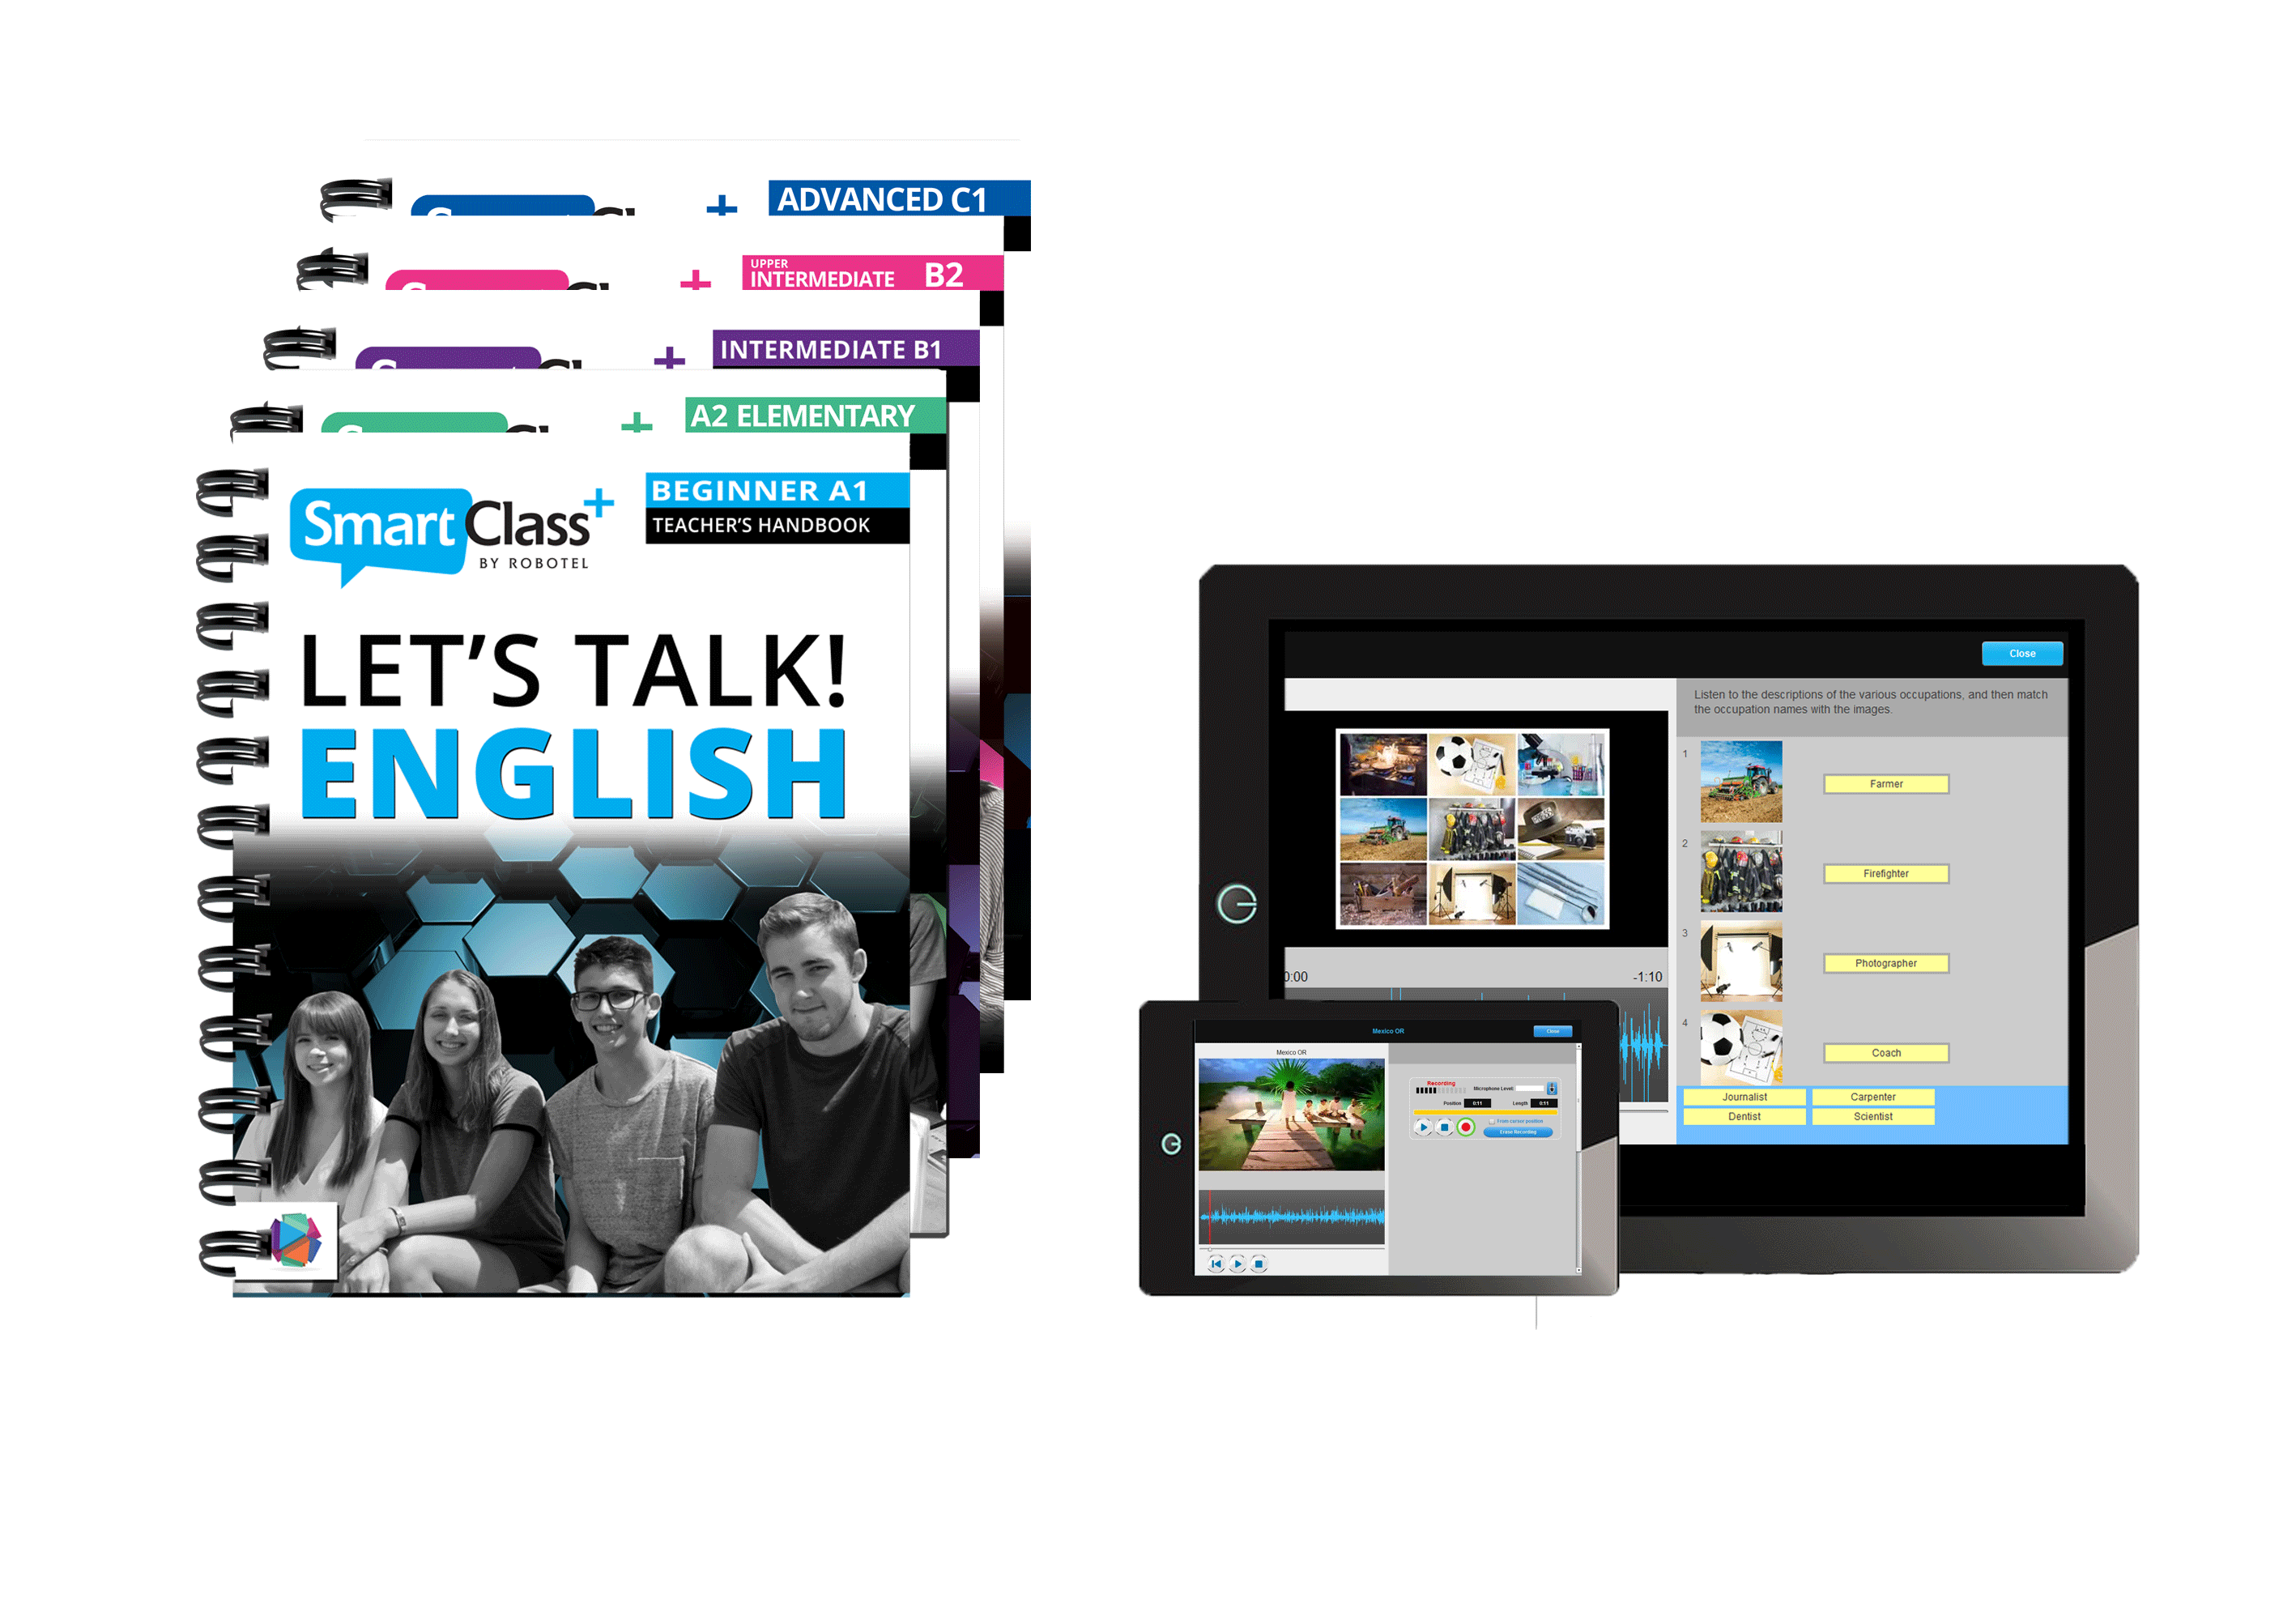 LETS-TALK-ENGLISH